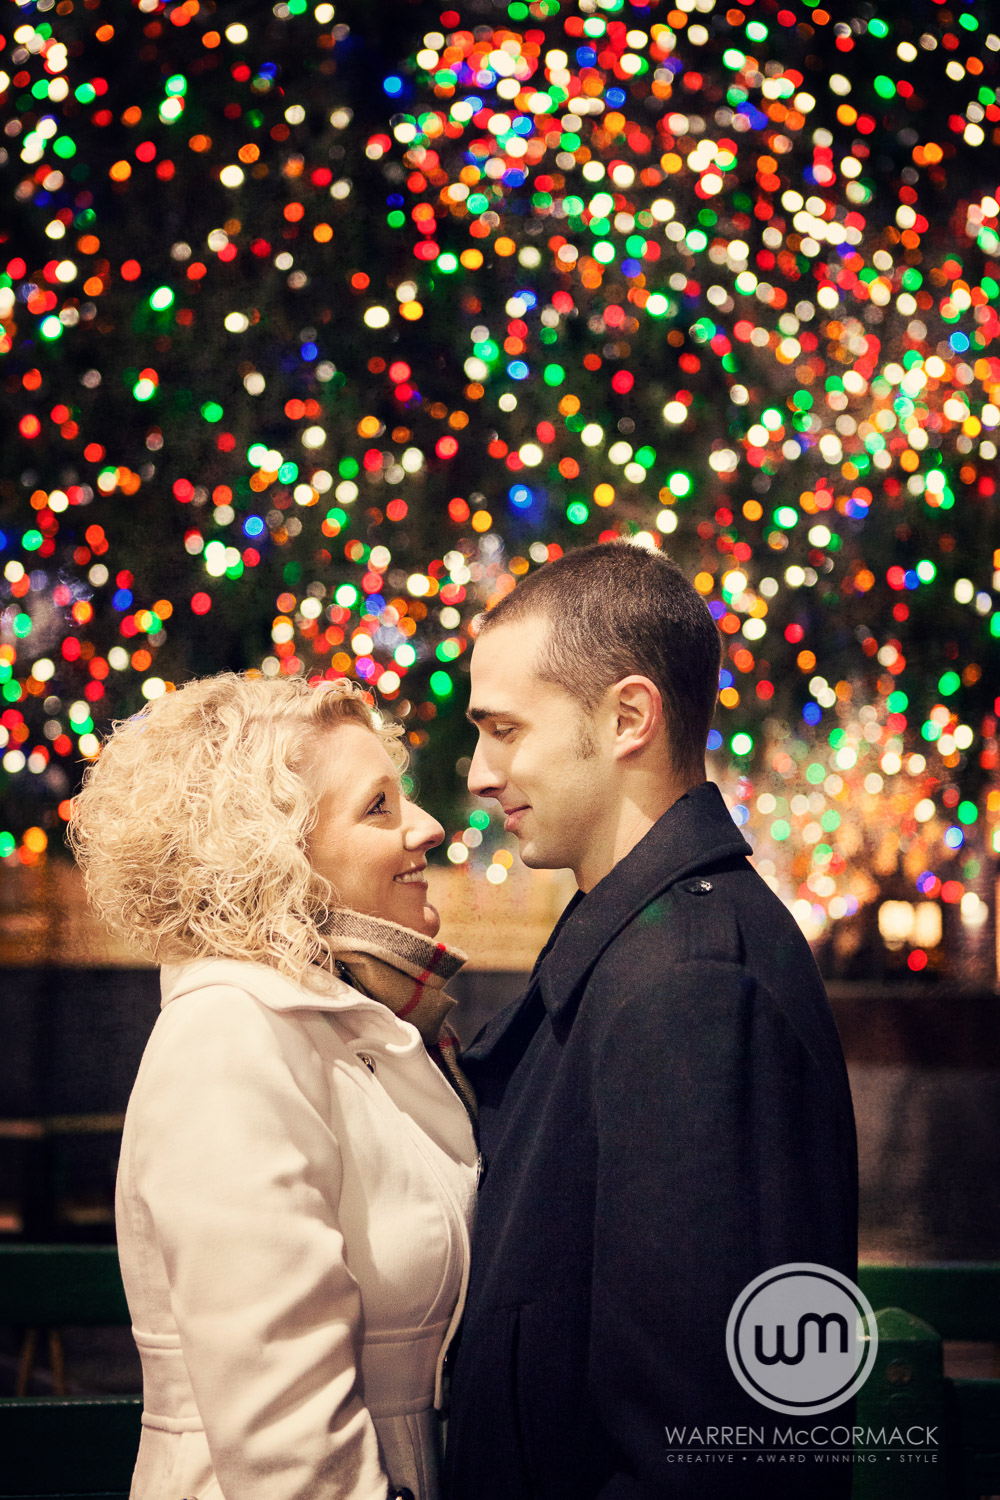 nyc_engagement_photographer_0028.jpg